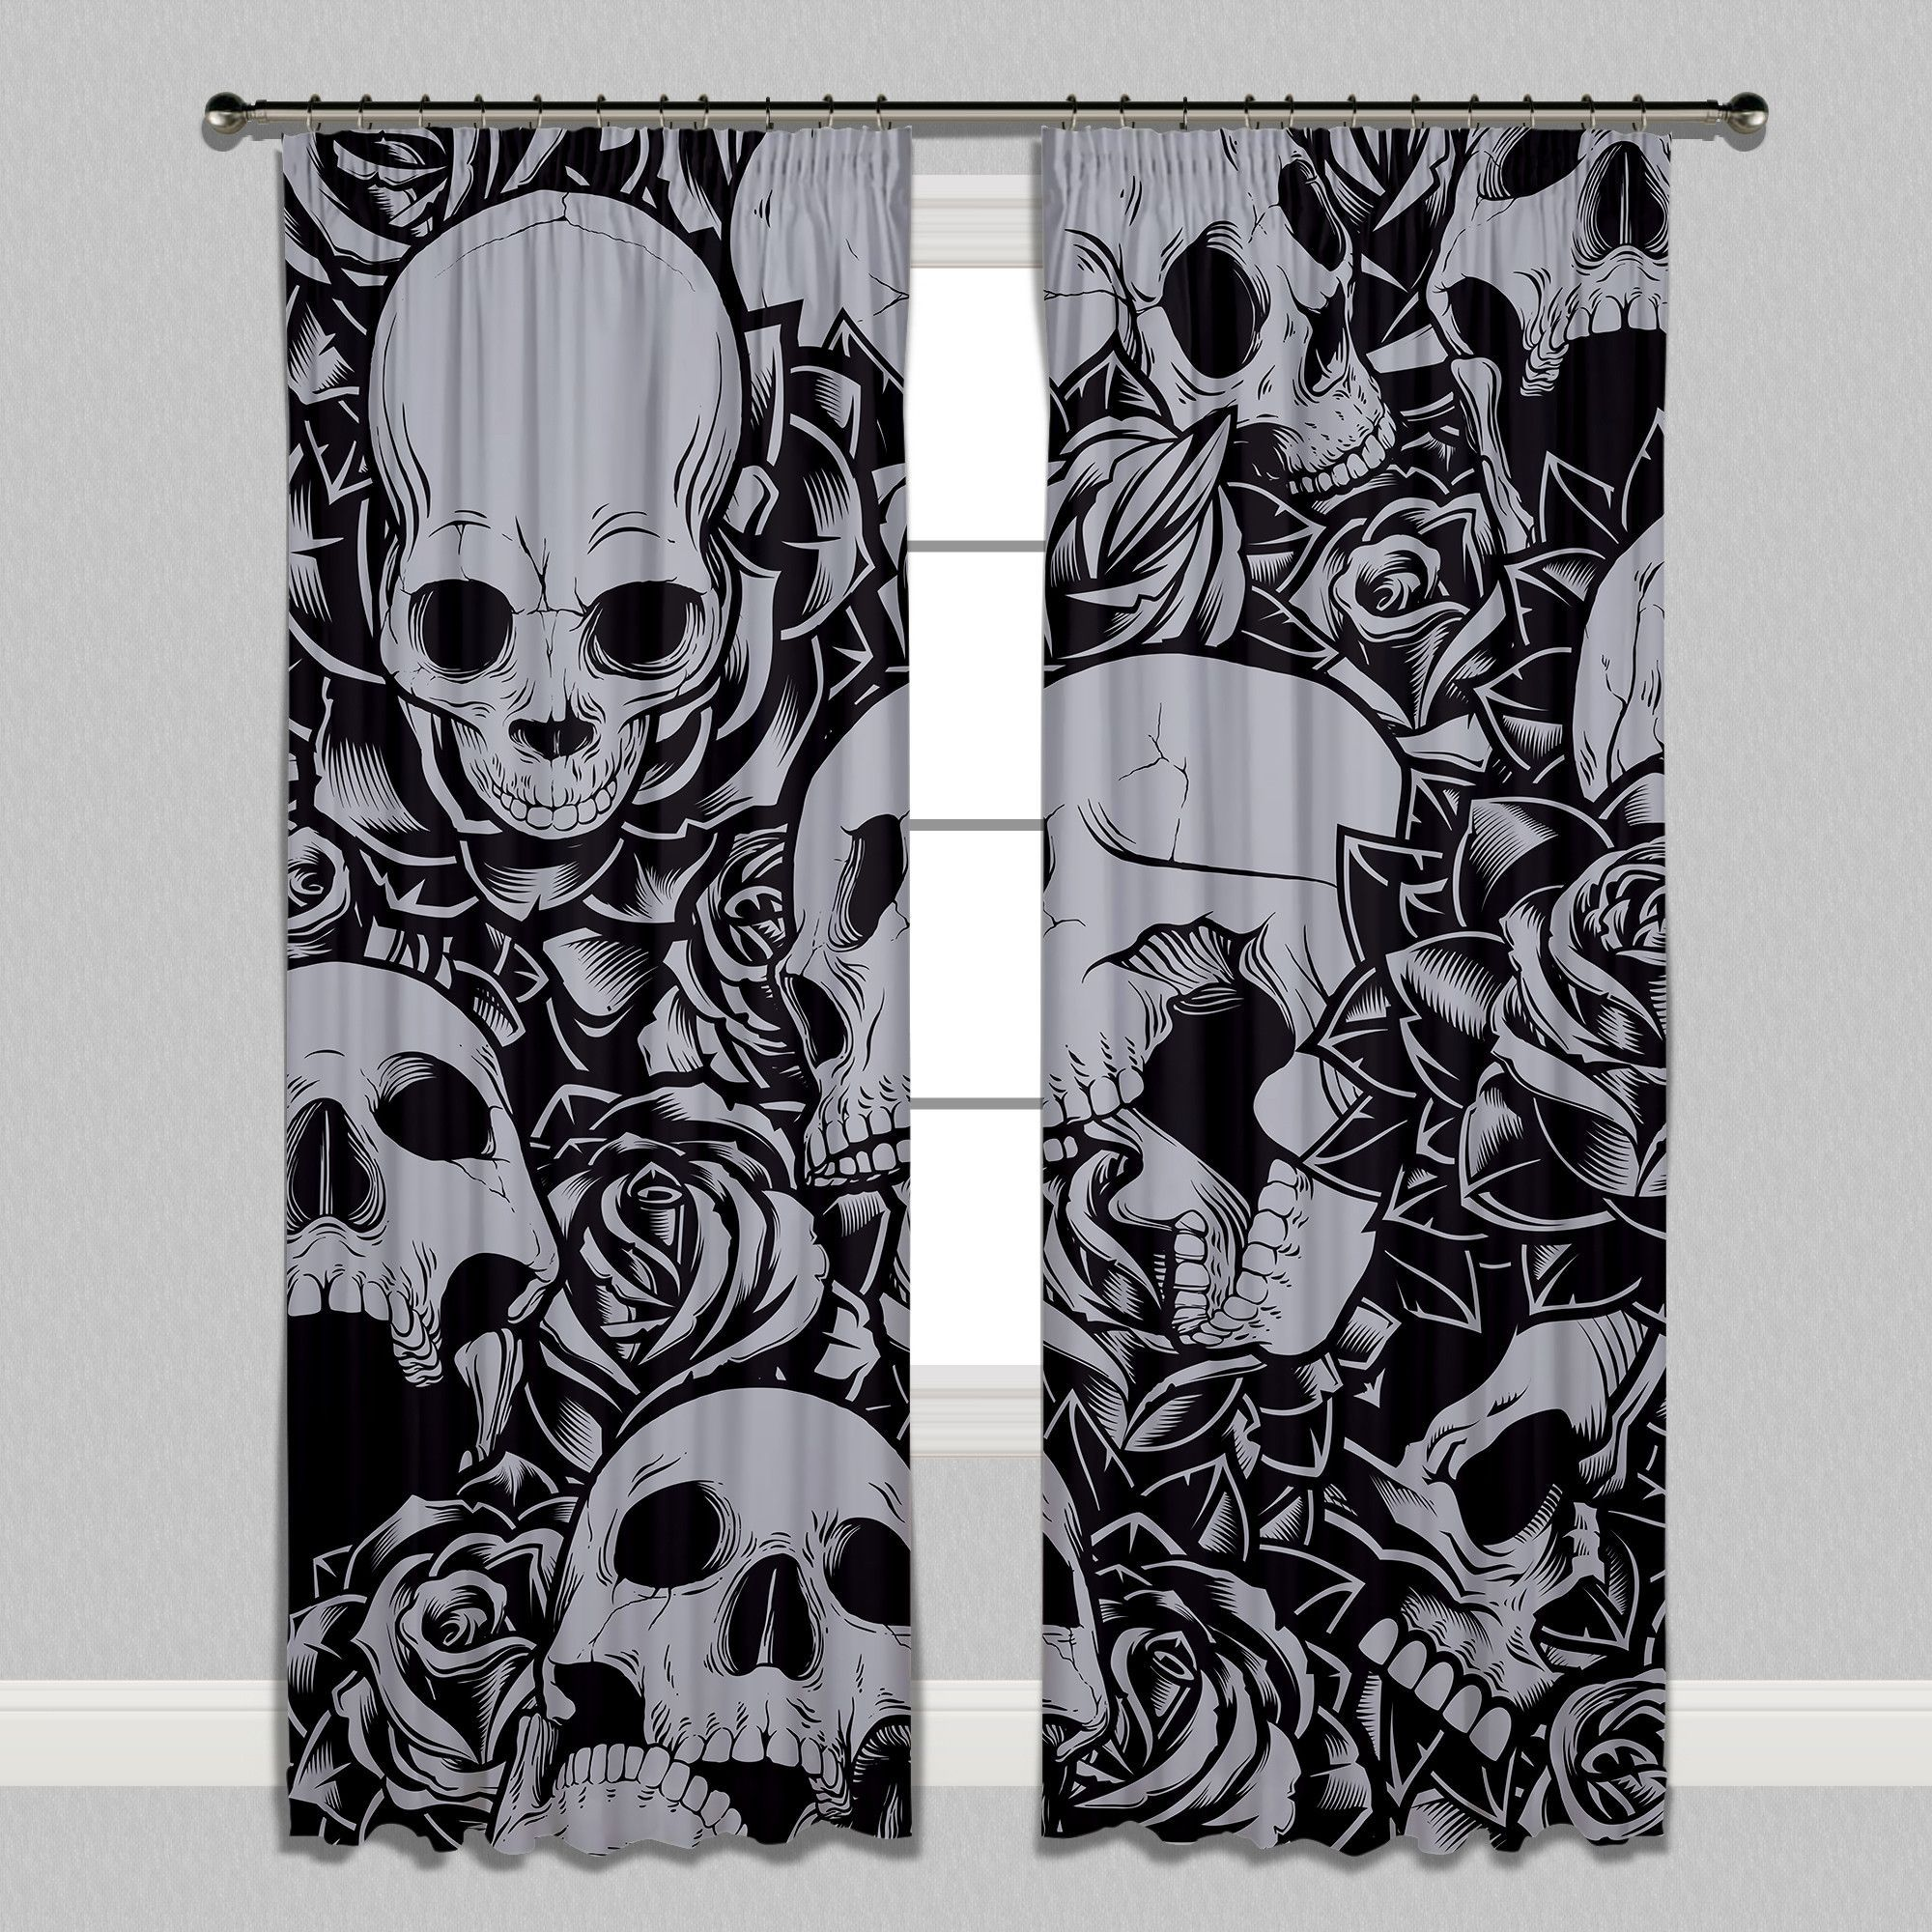 Drowning in Roses Skull Curtains | Gothic home decor ...